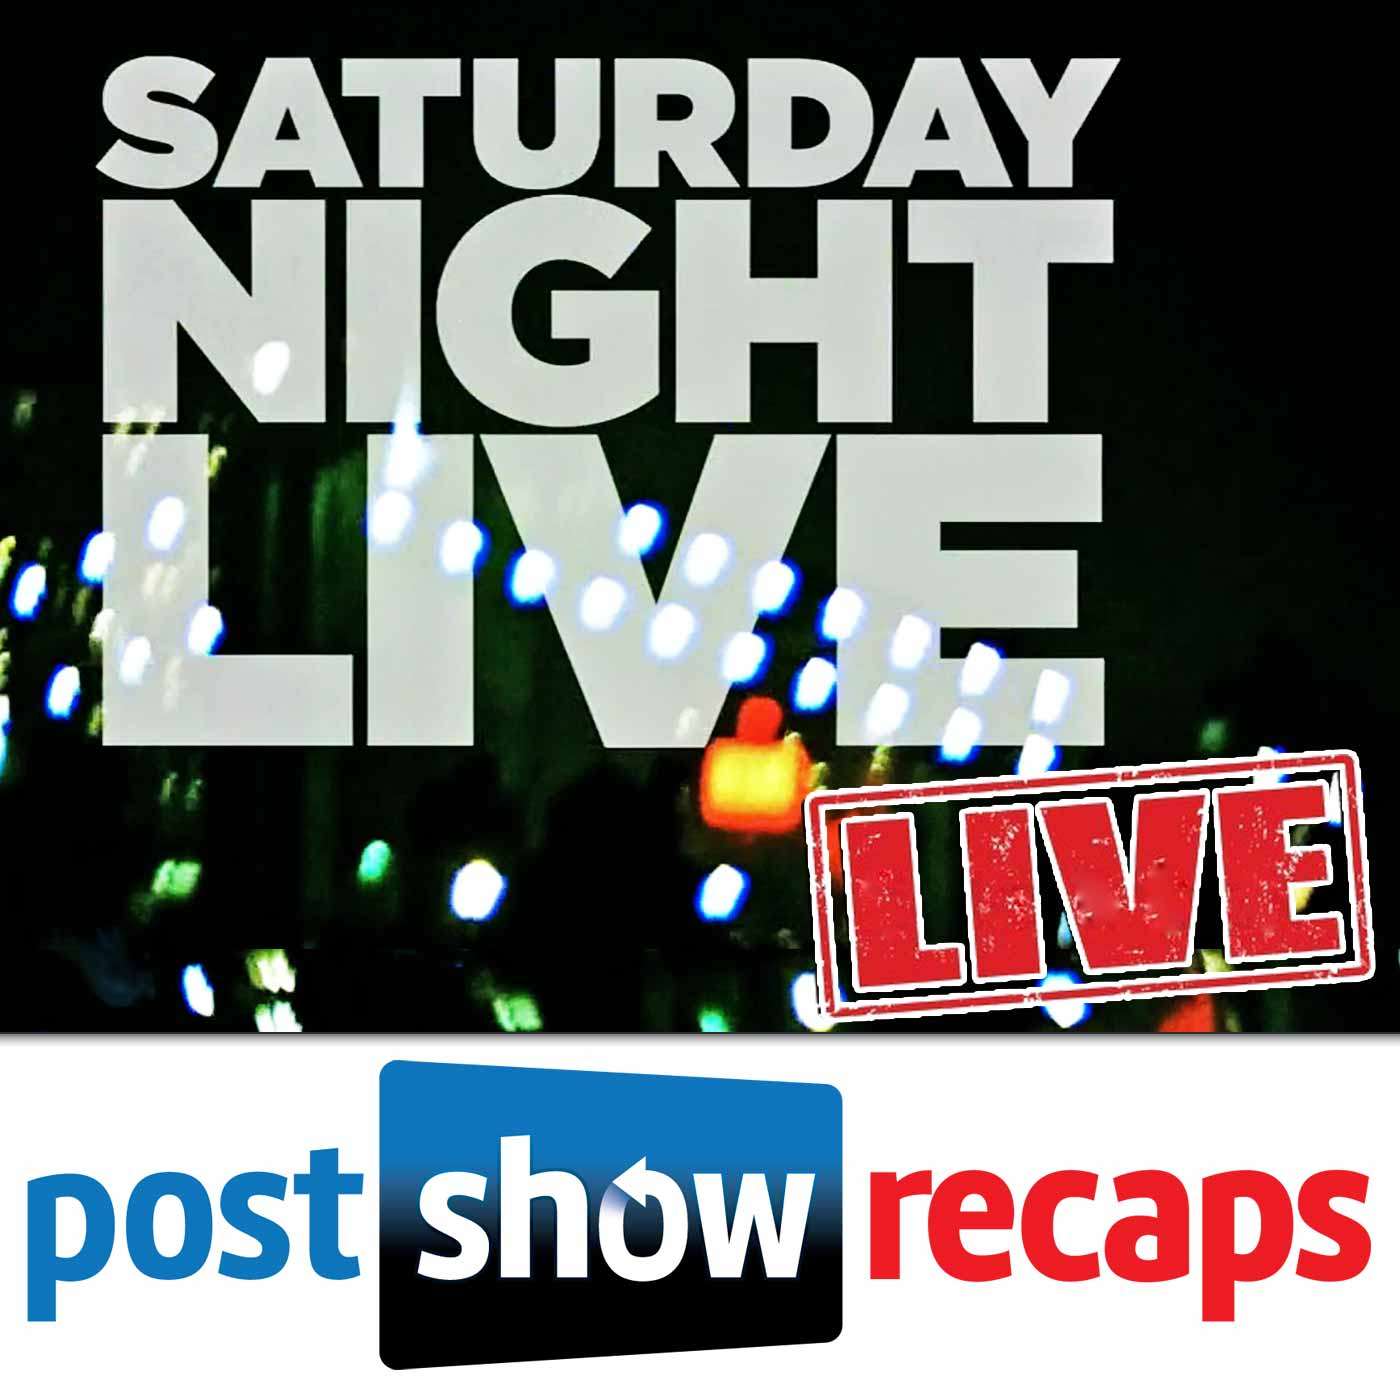 Saturday Night Live LIVE: Post Show Recaps Podcast